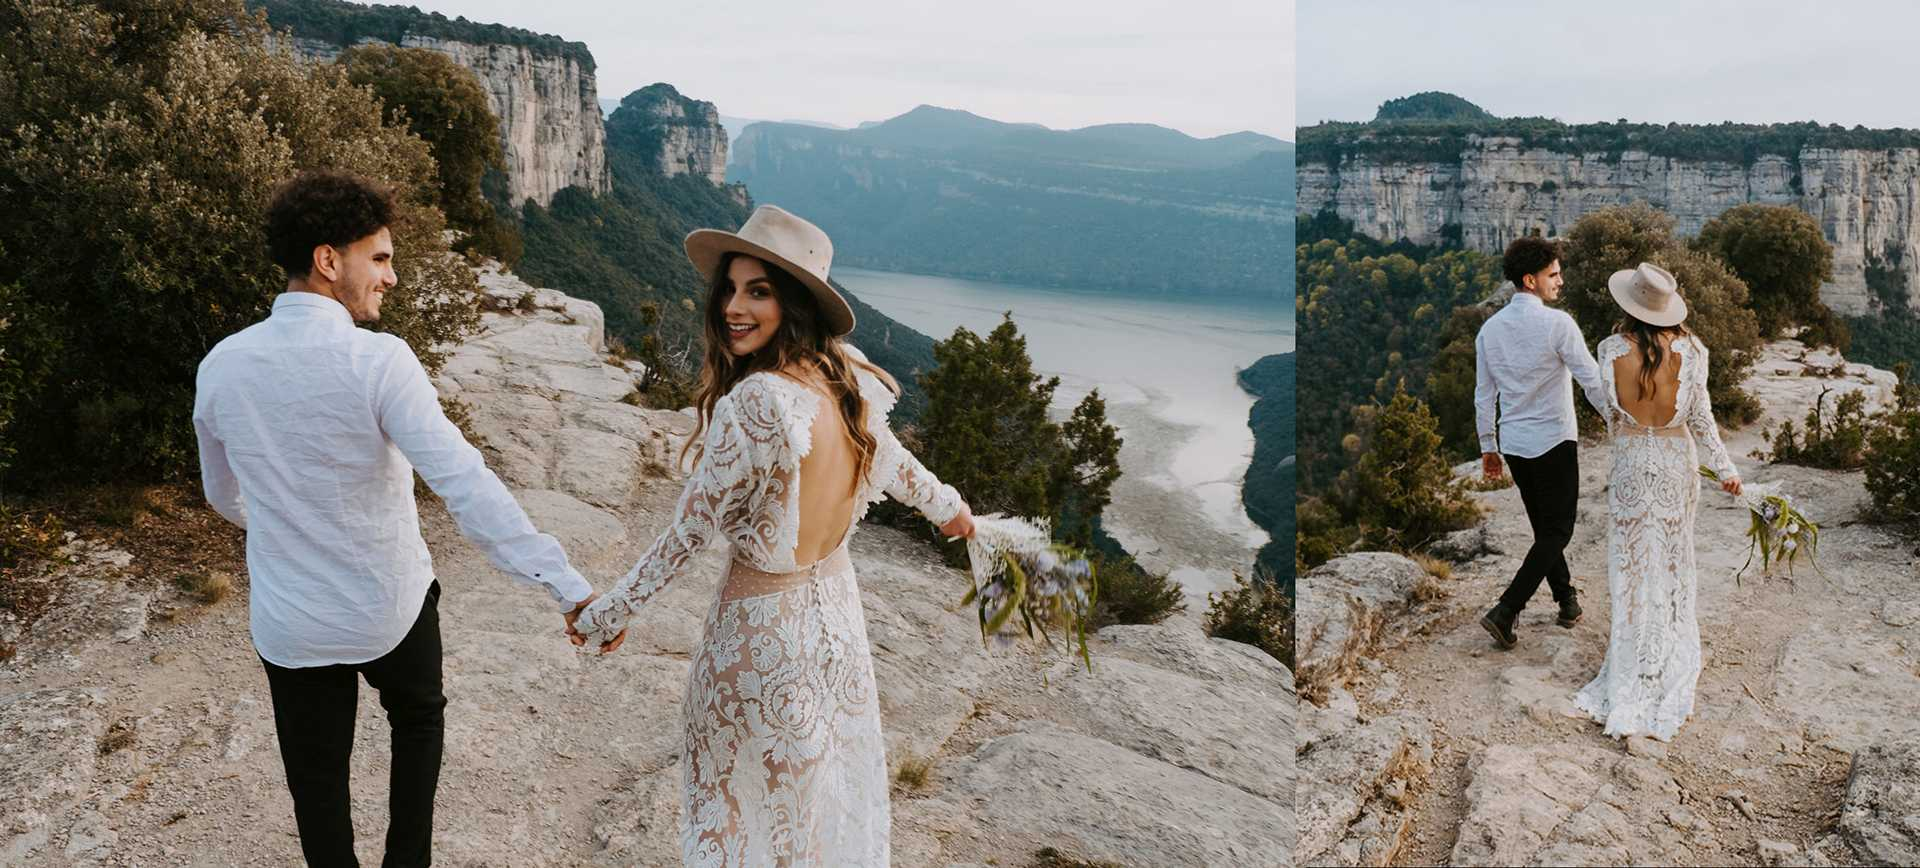 barcelona after-wedding package for Morro D'Labella